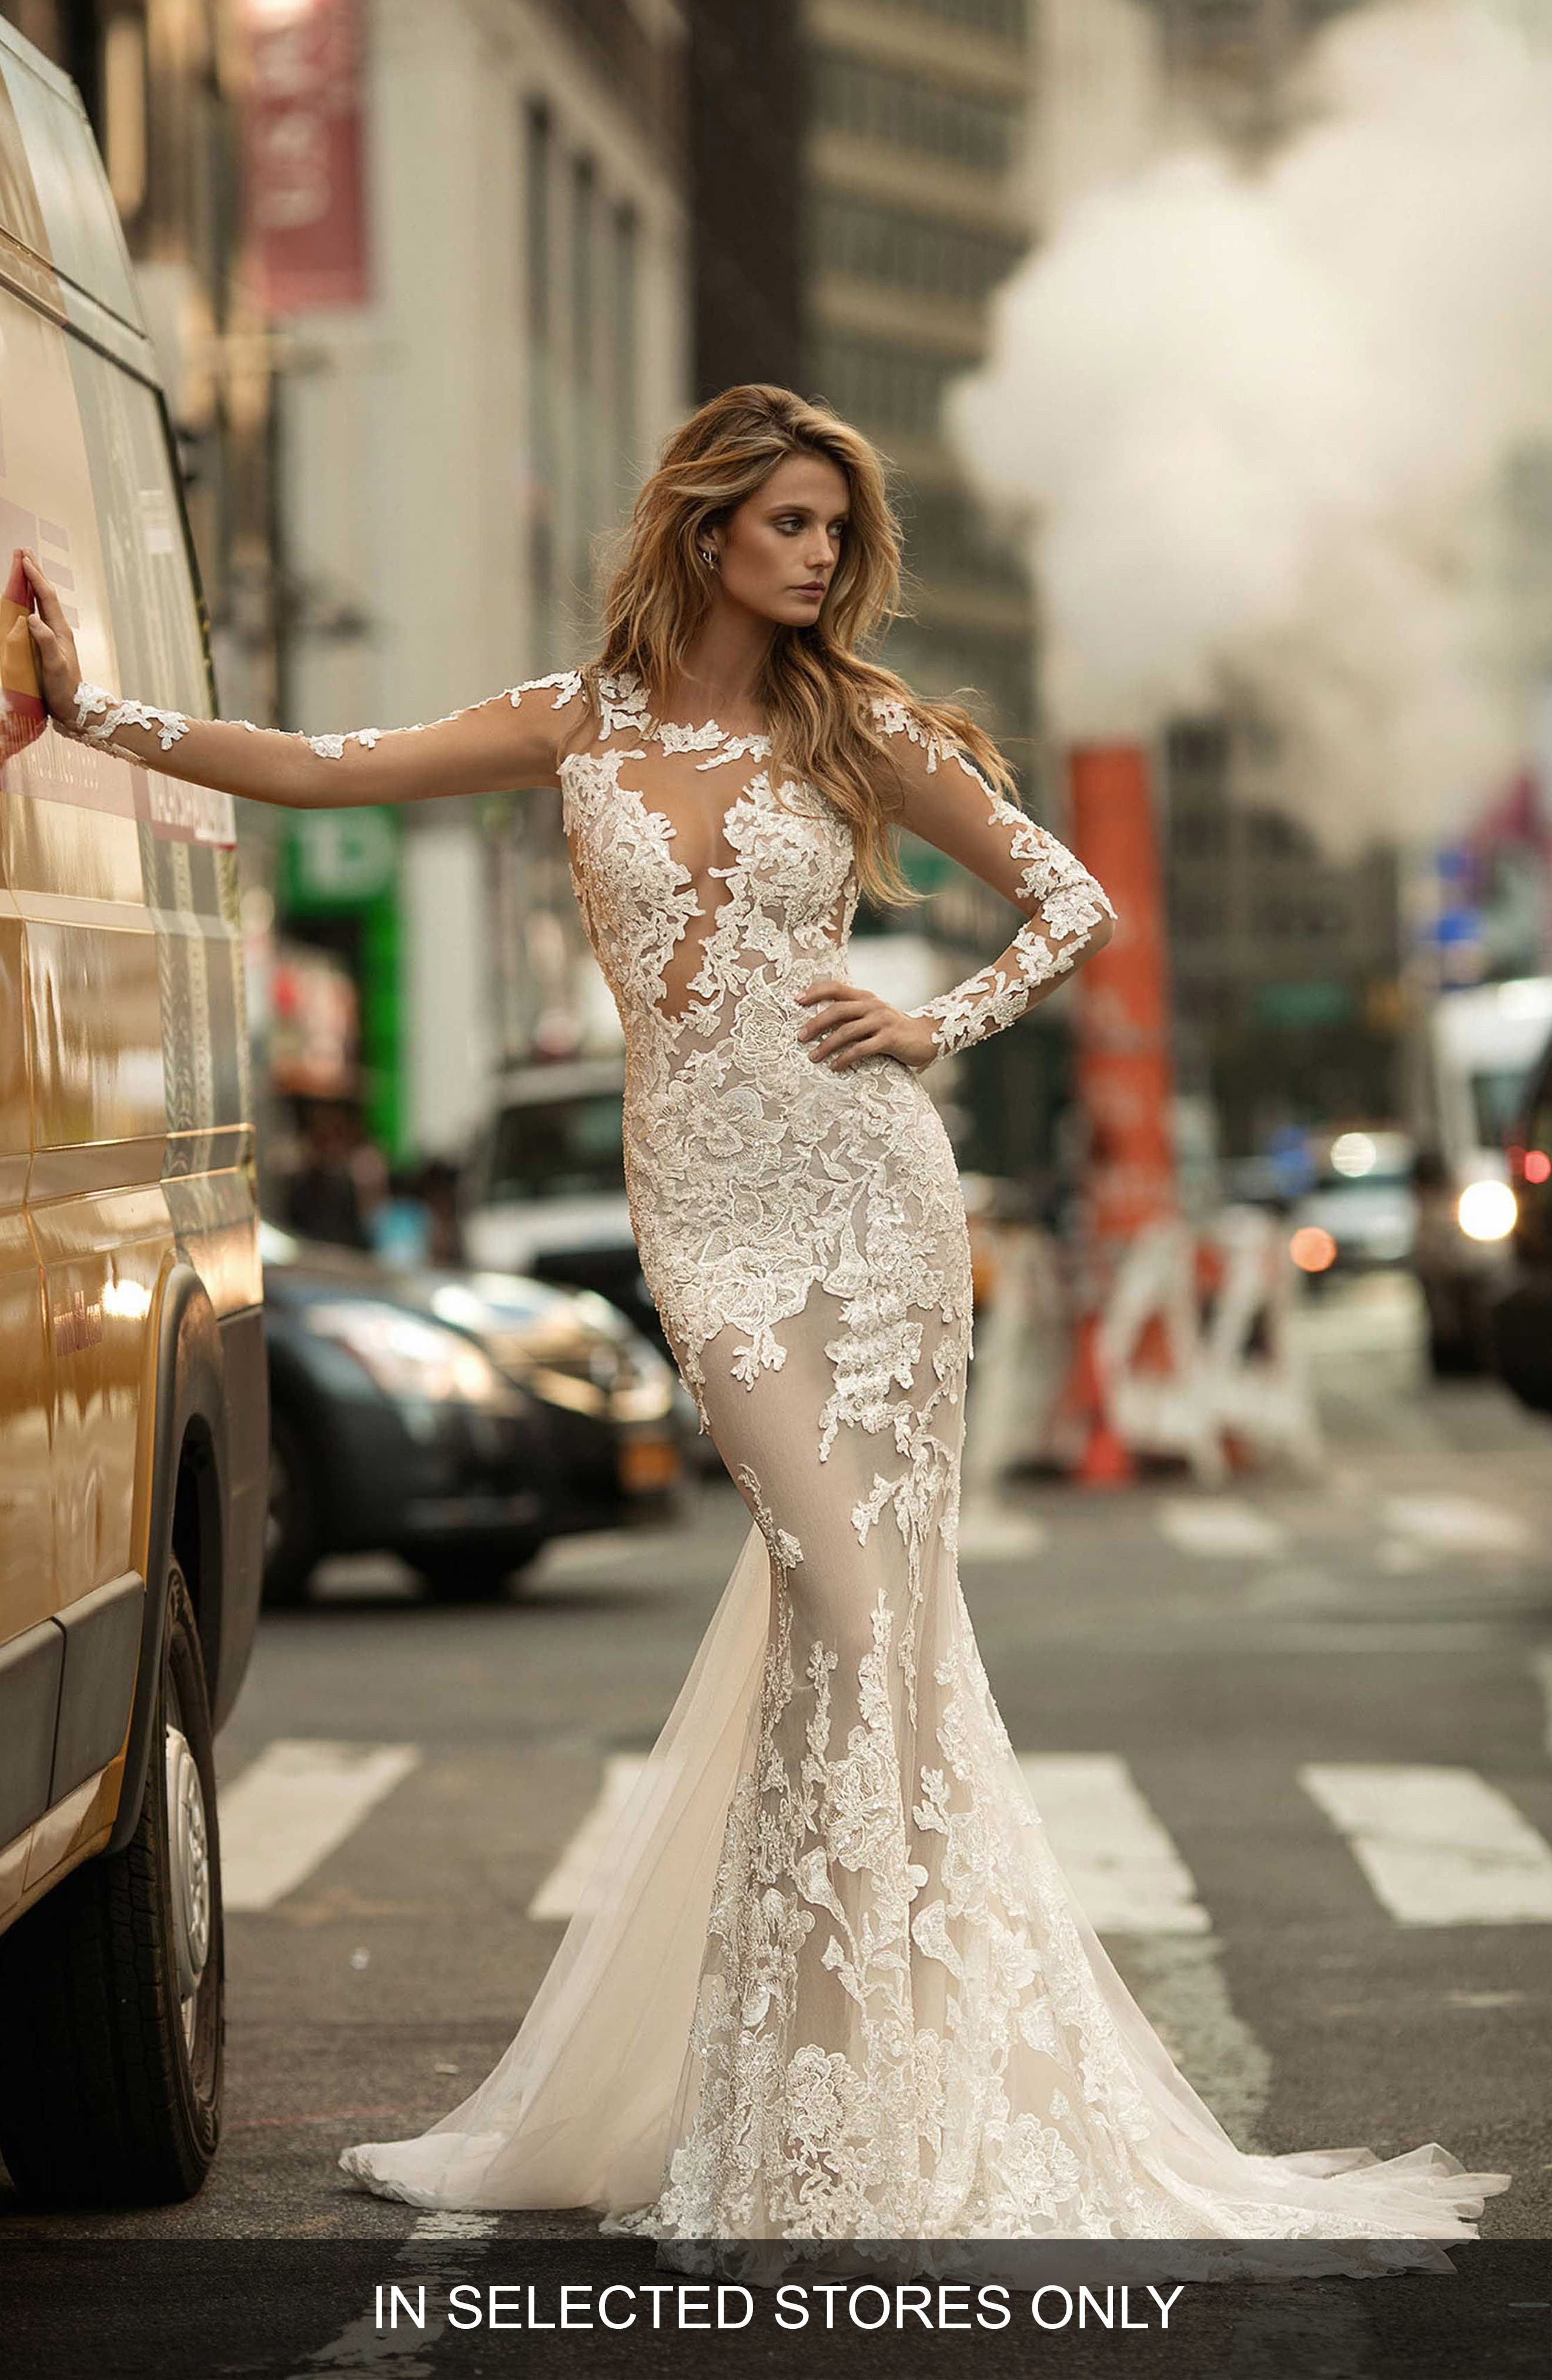 Alternate Image 1 Selected - Berta Illusion Long Sleeve Mermaid Gown (In Selected Stores Only)